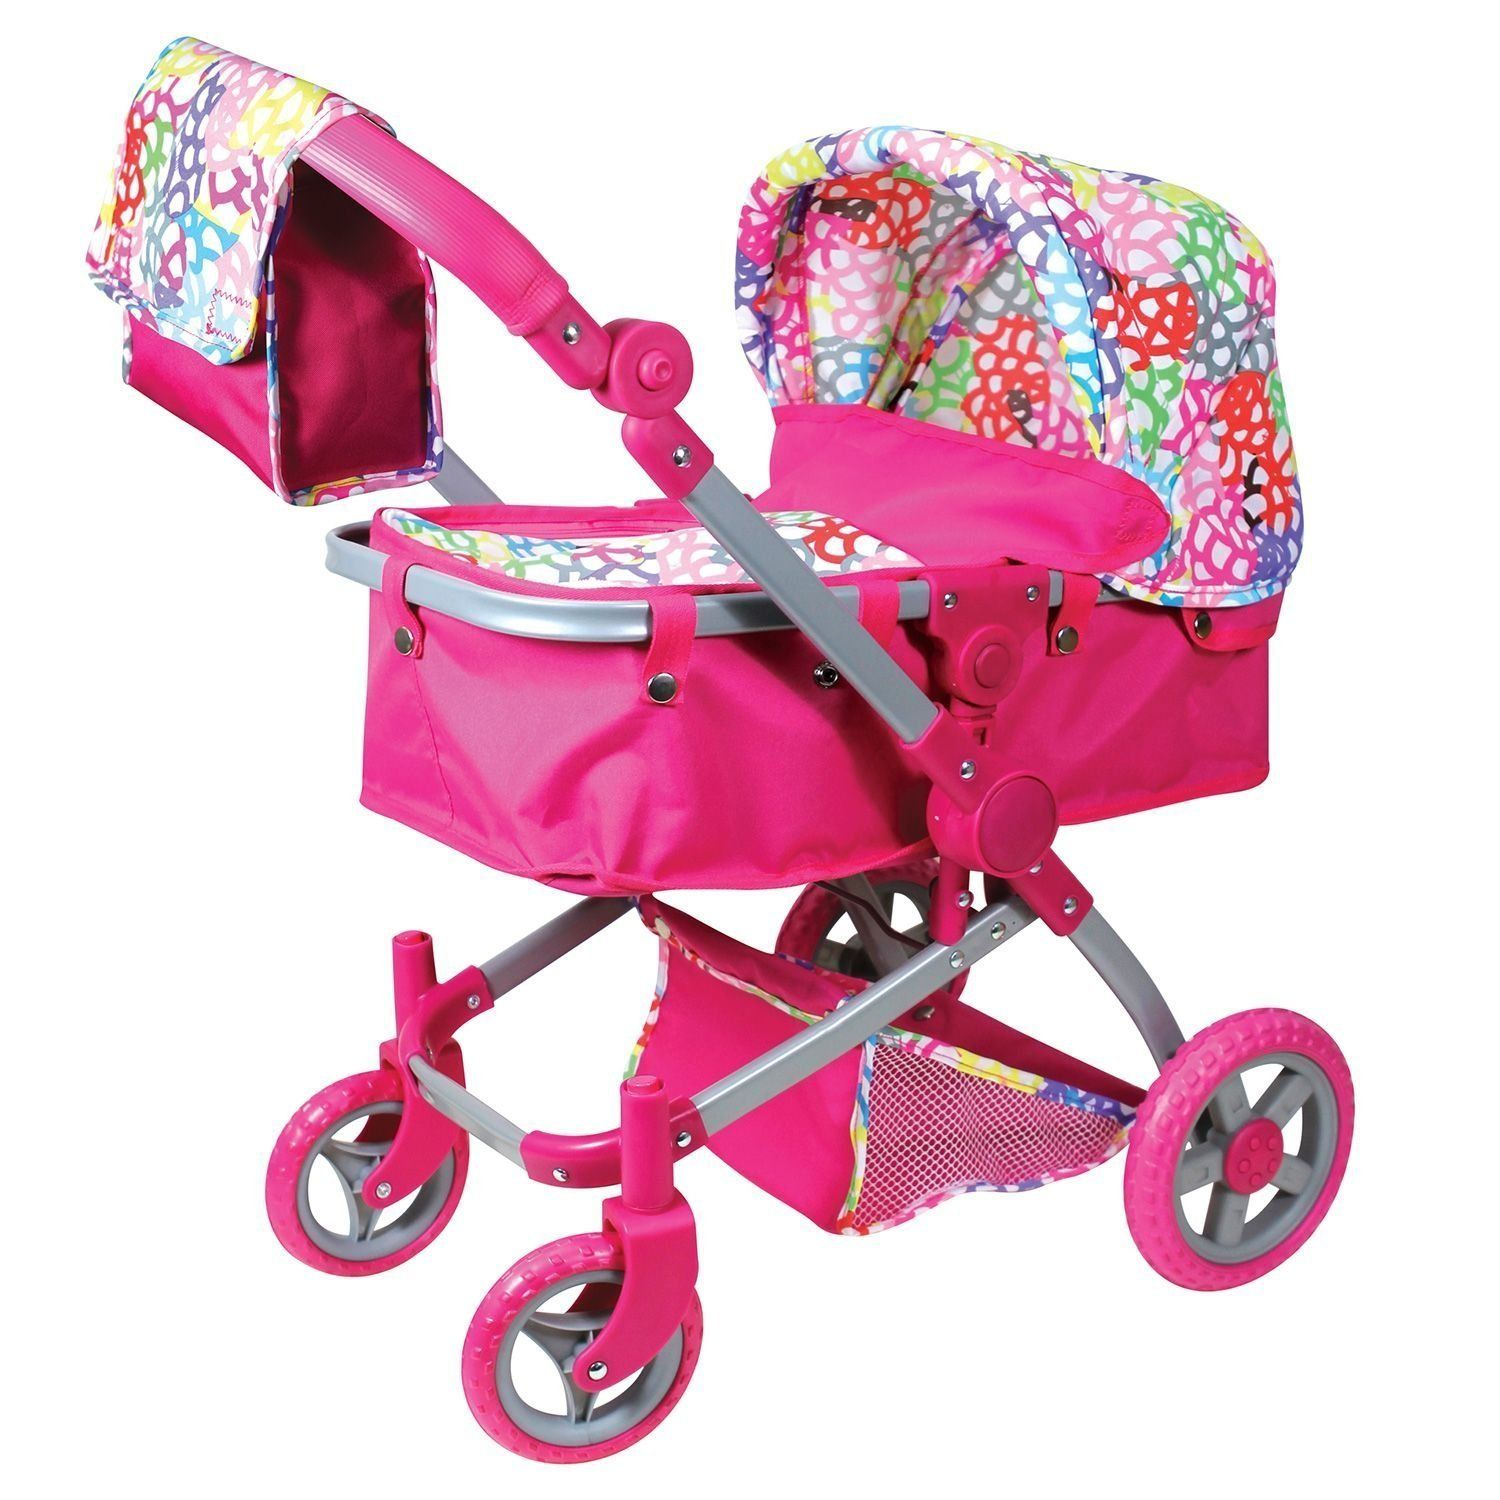 Baby Doll Stroller Multi Colored Comes With A Baby